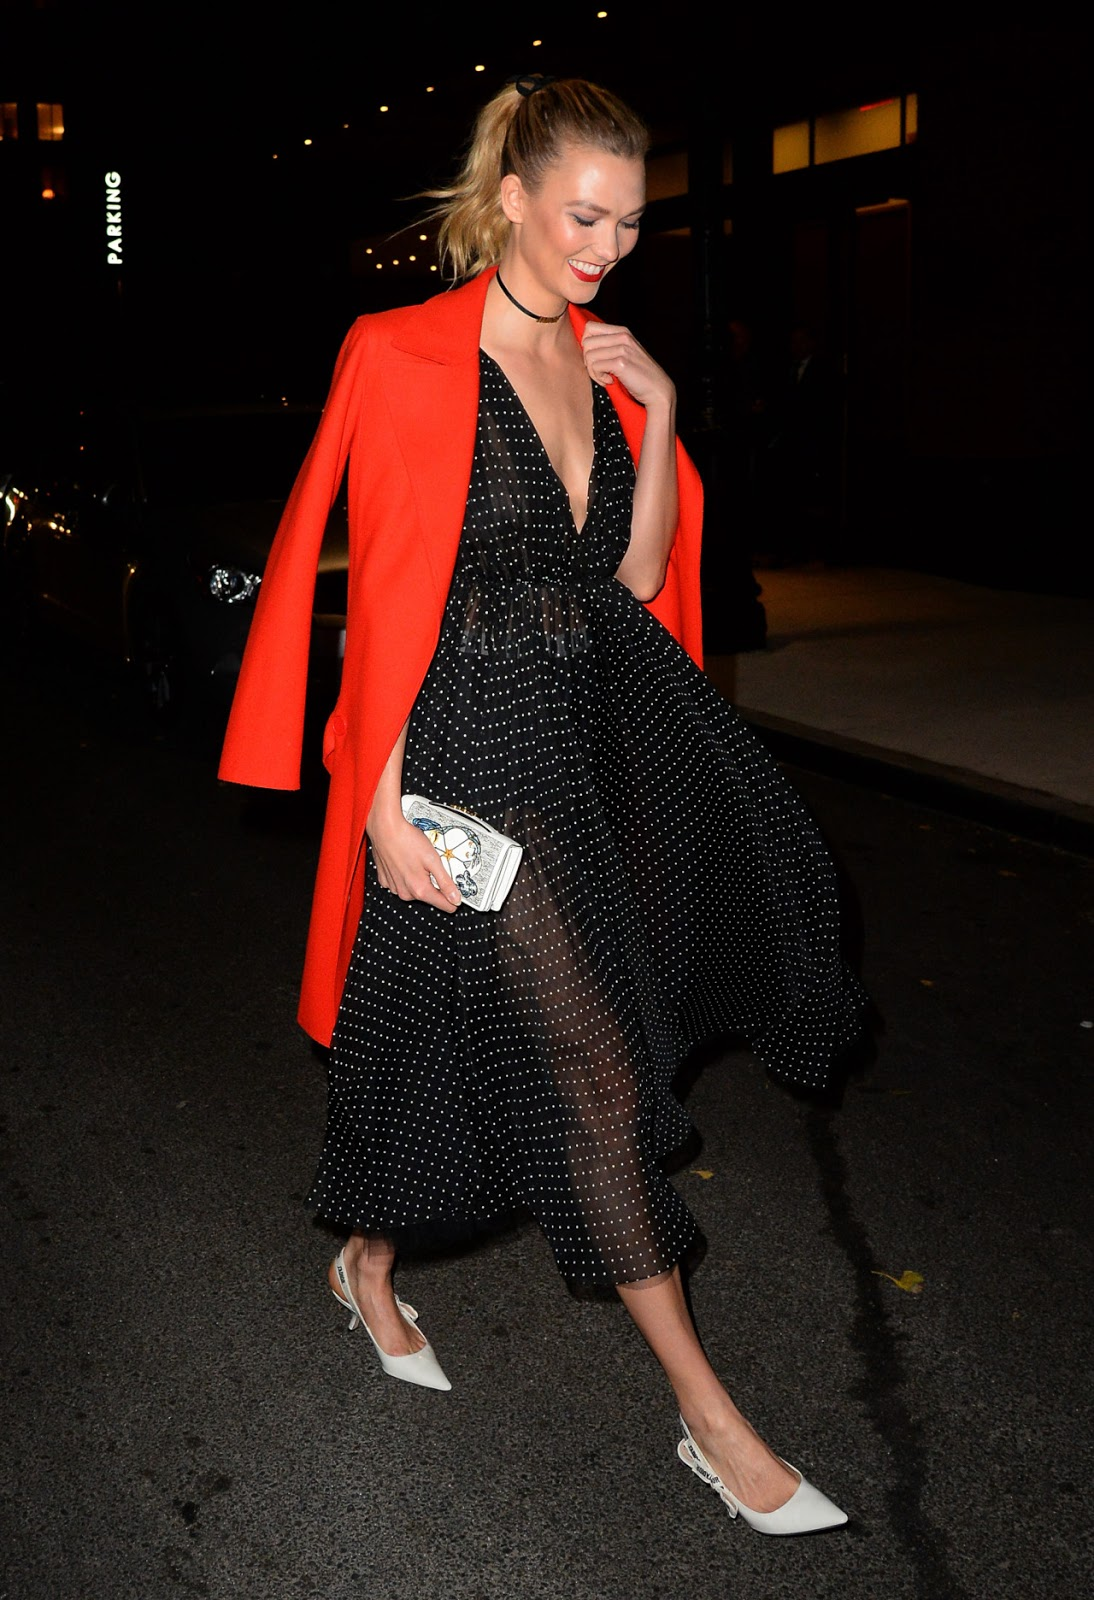 Karlie Kloss Steps Out in a Sheer Dress in NYC